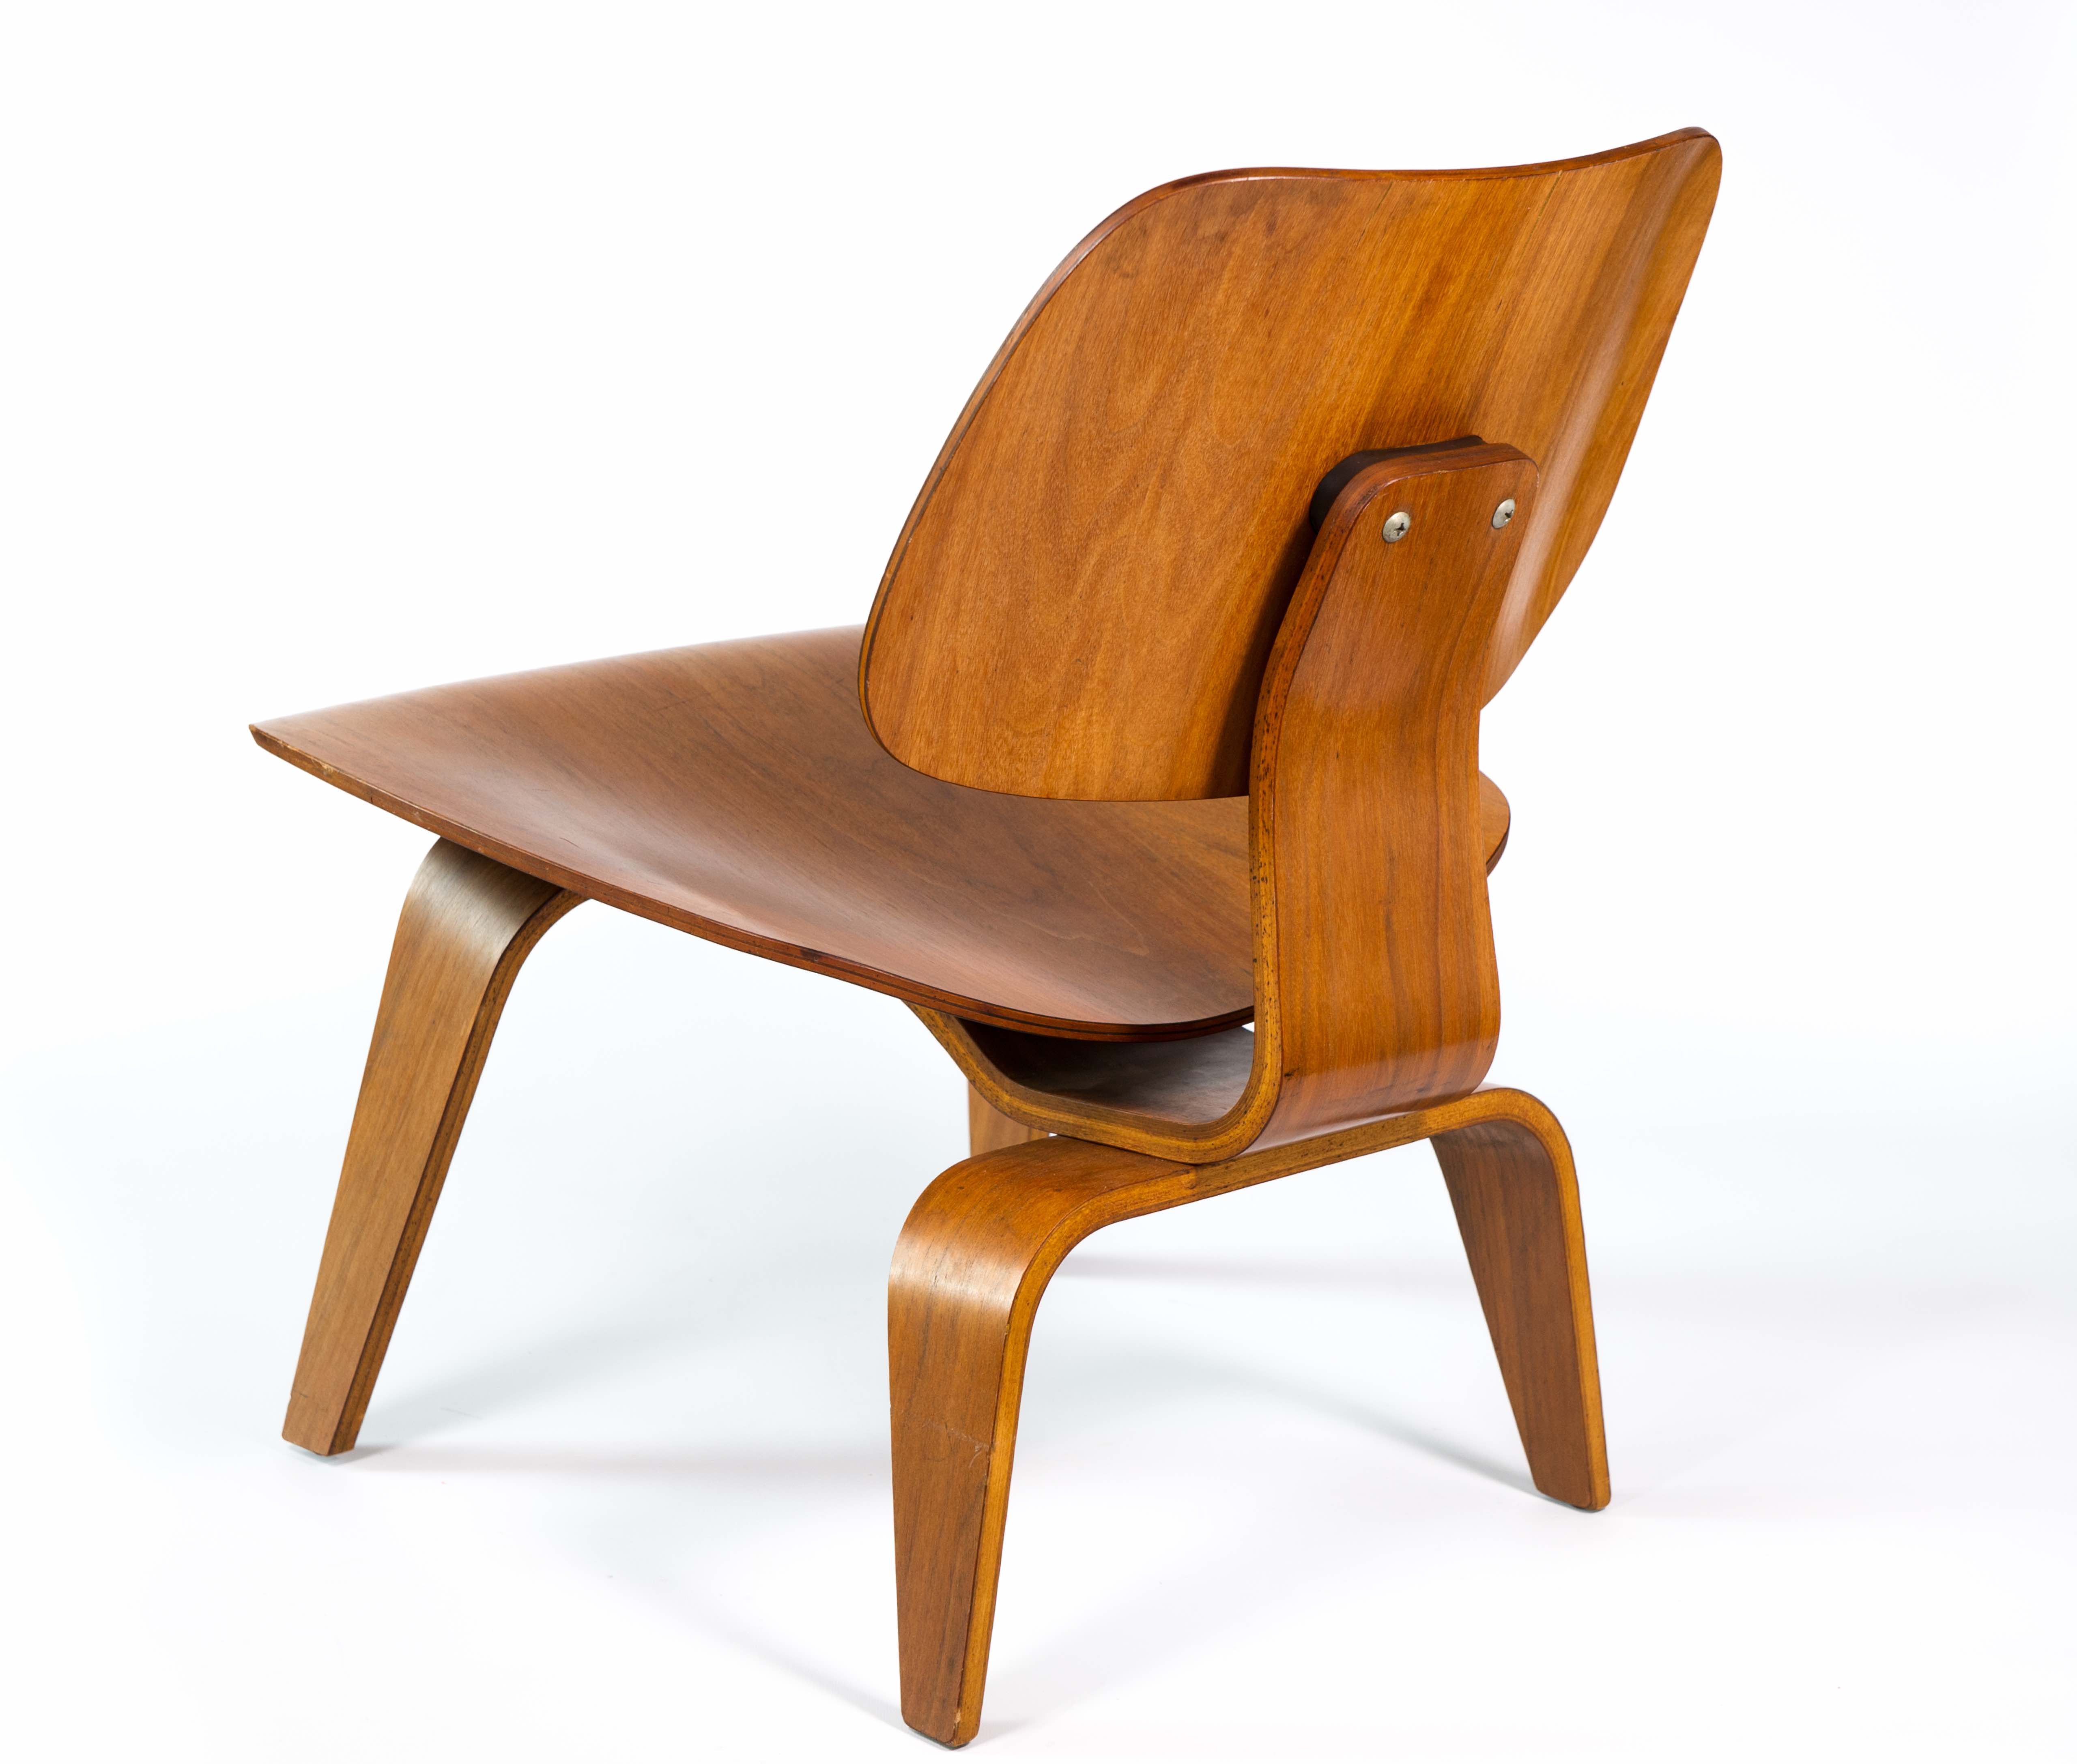 Wooden 1952 Herman Miller Eames LCW - Ply Lounge Chair Wood